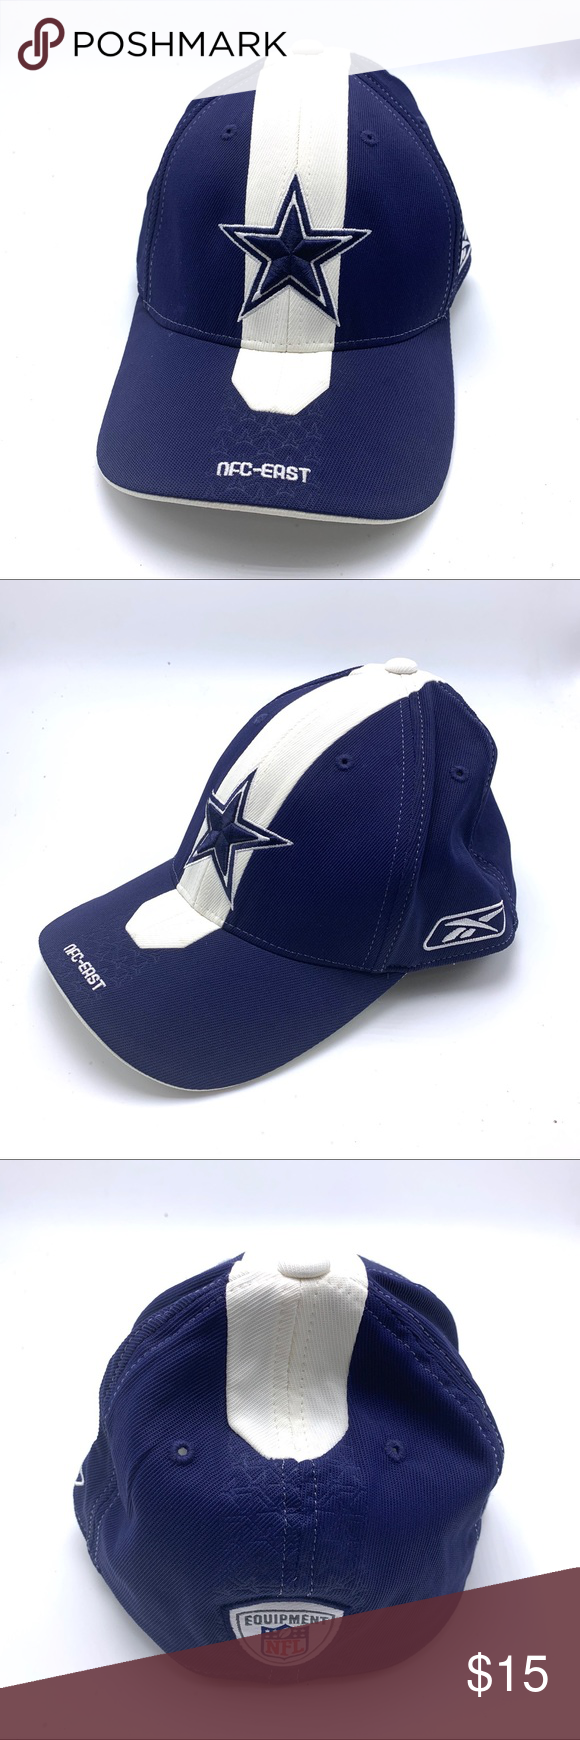 02ff4016c Dallas Cowboys Hat Reebok NFL Dallas Cowboys Hat Reebok NFL Accessories Hats